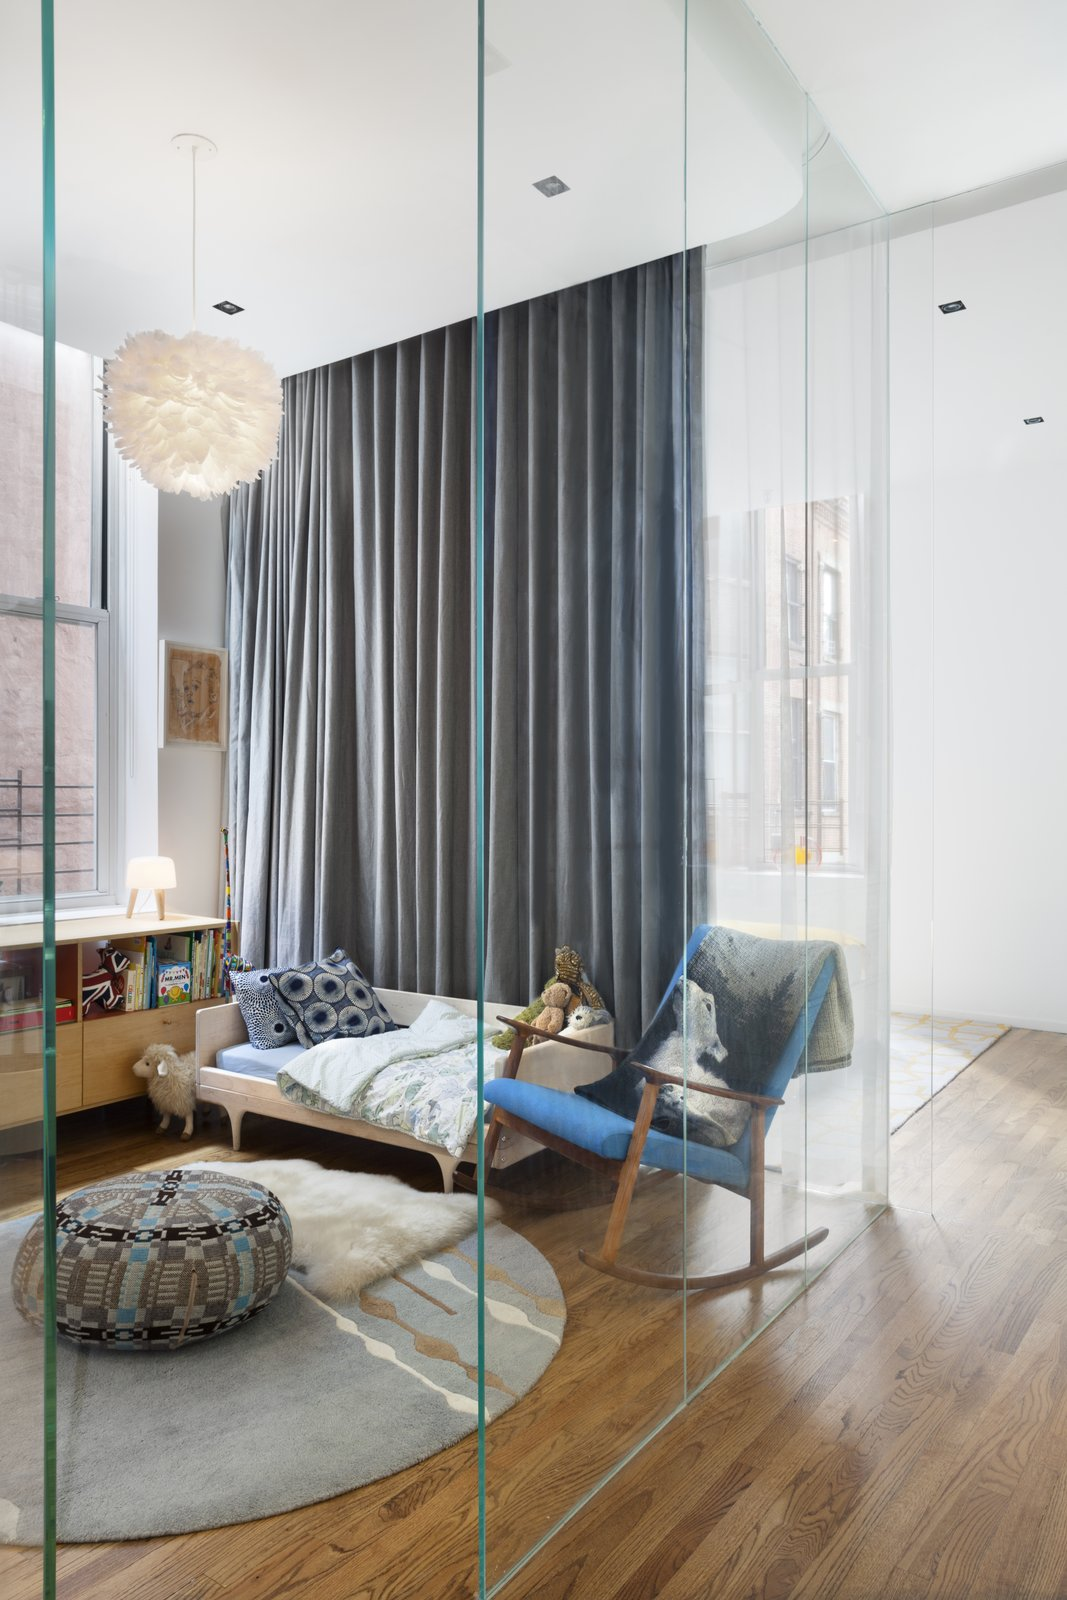 Tribeca Loft by Method Design Architecture and Urbanism children's room